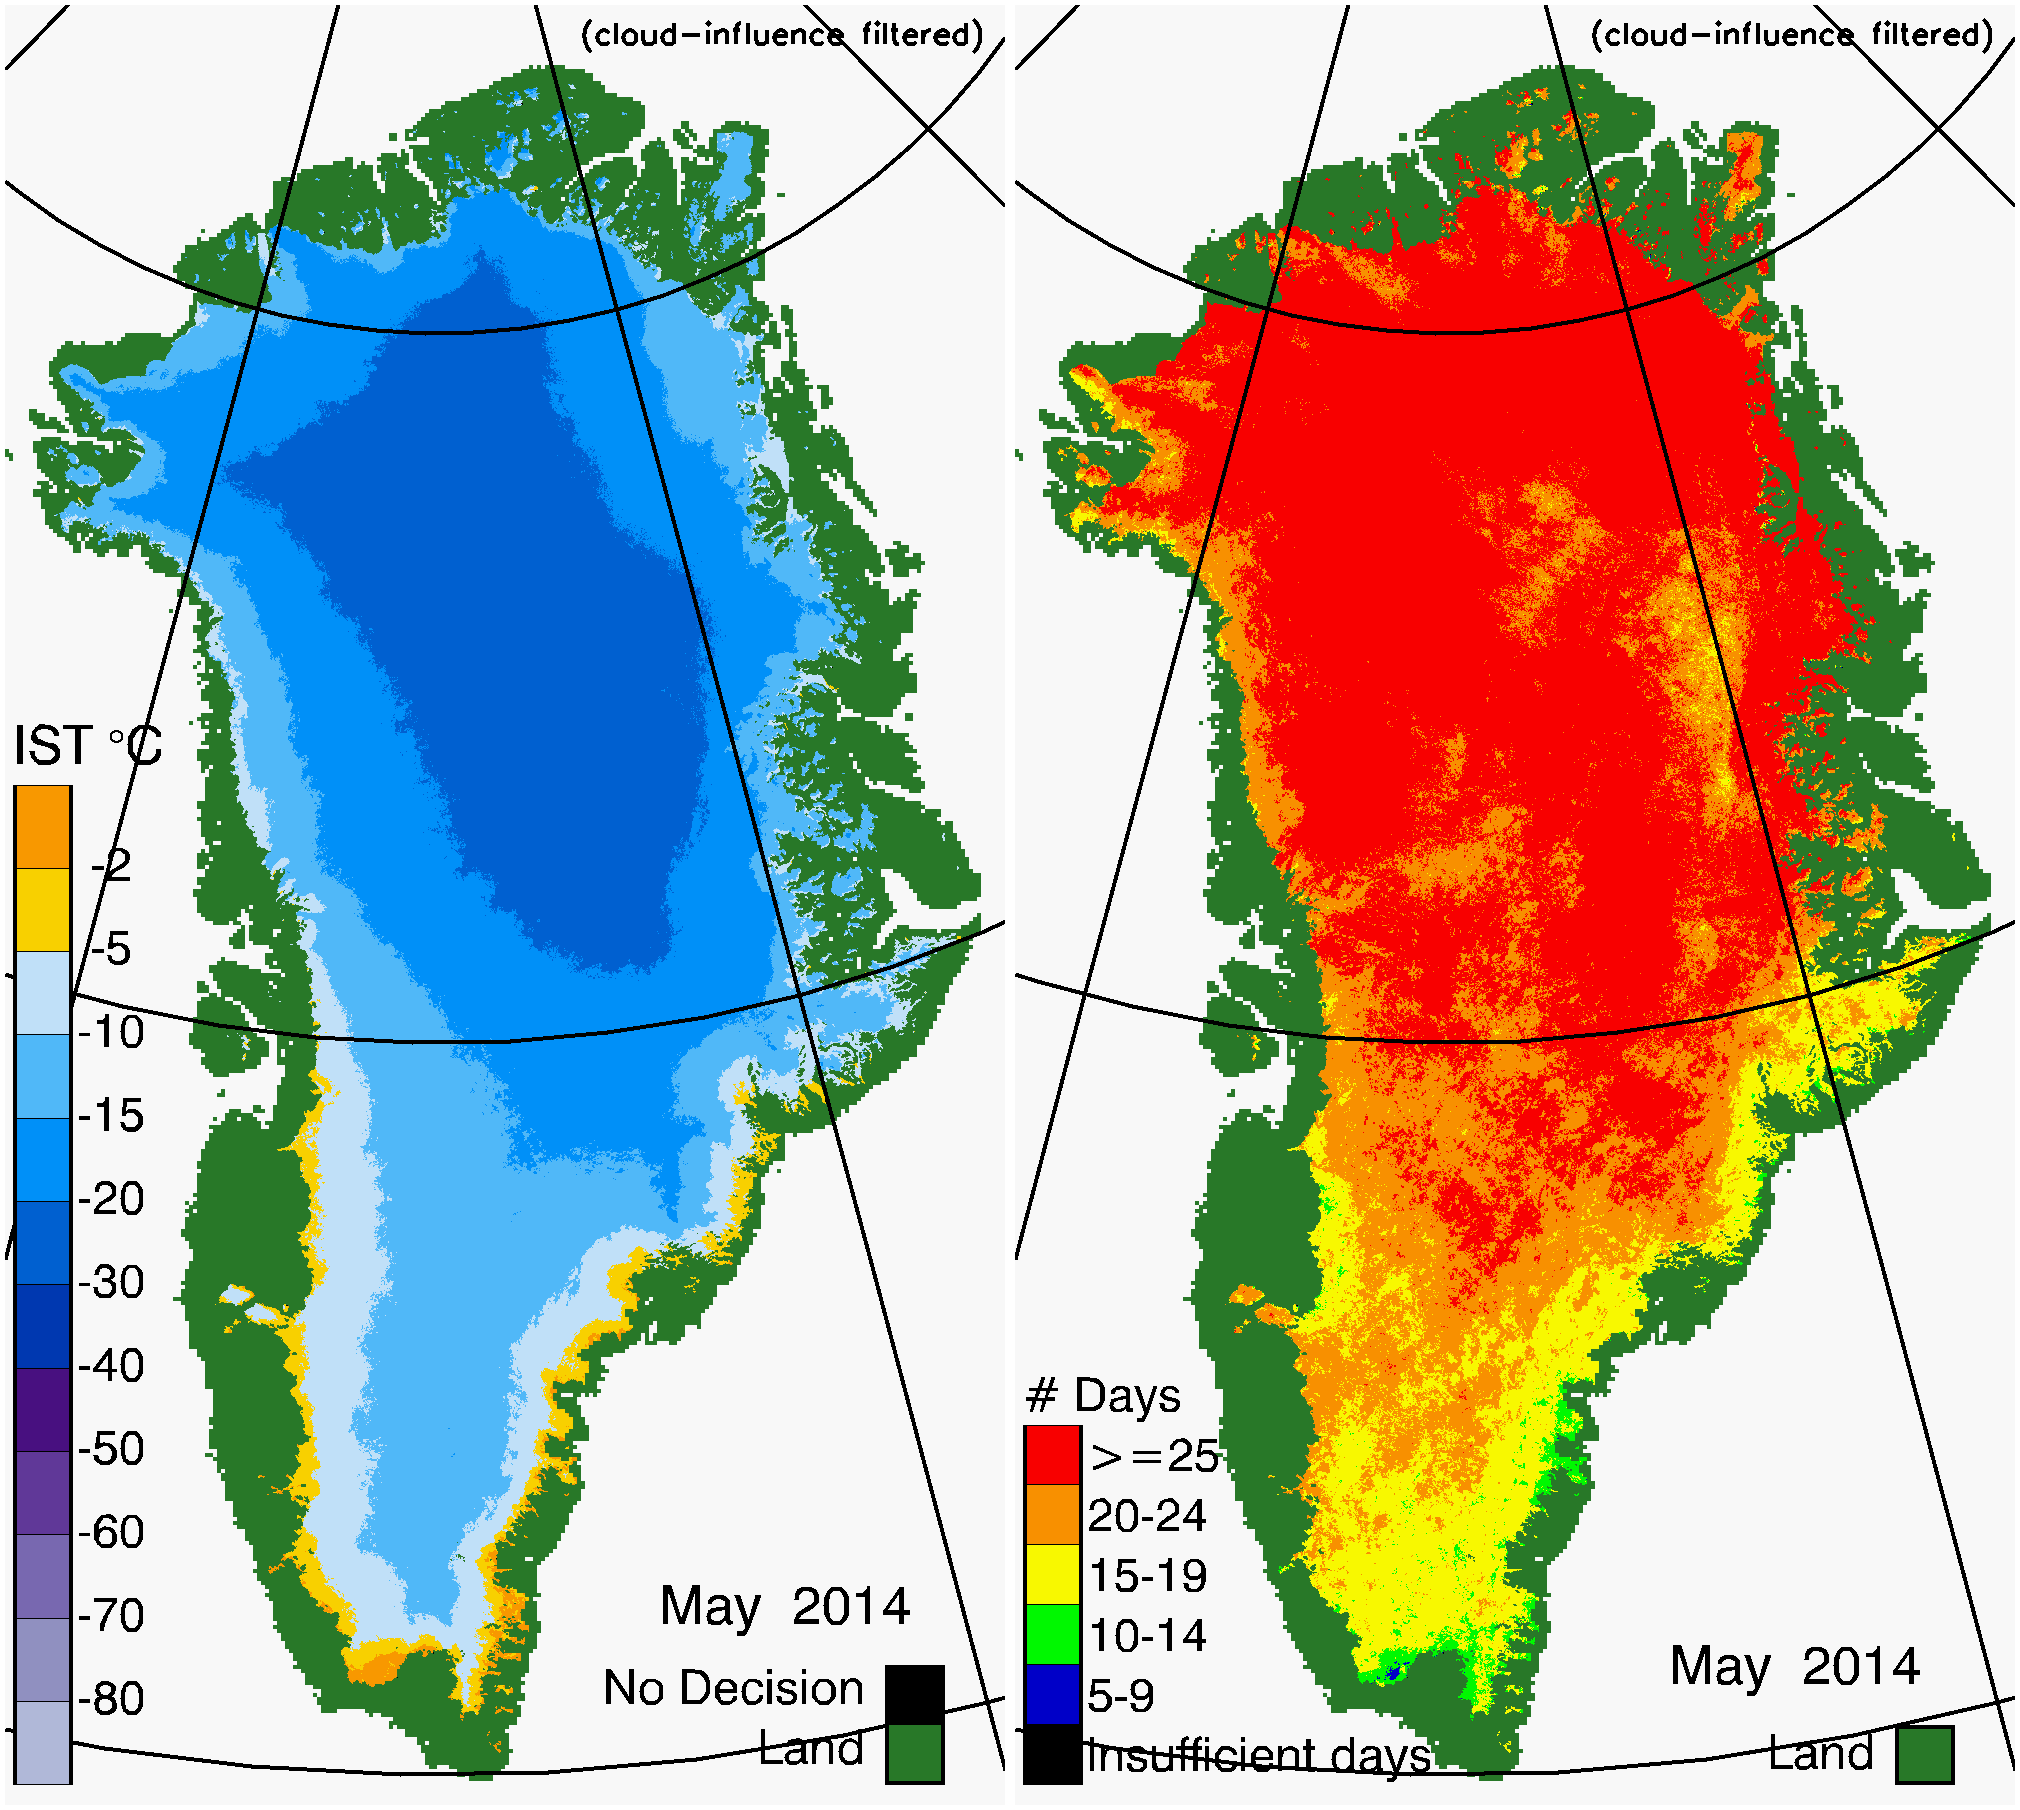 Greenland Surface Temp 05/2014